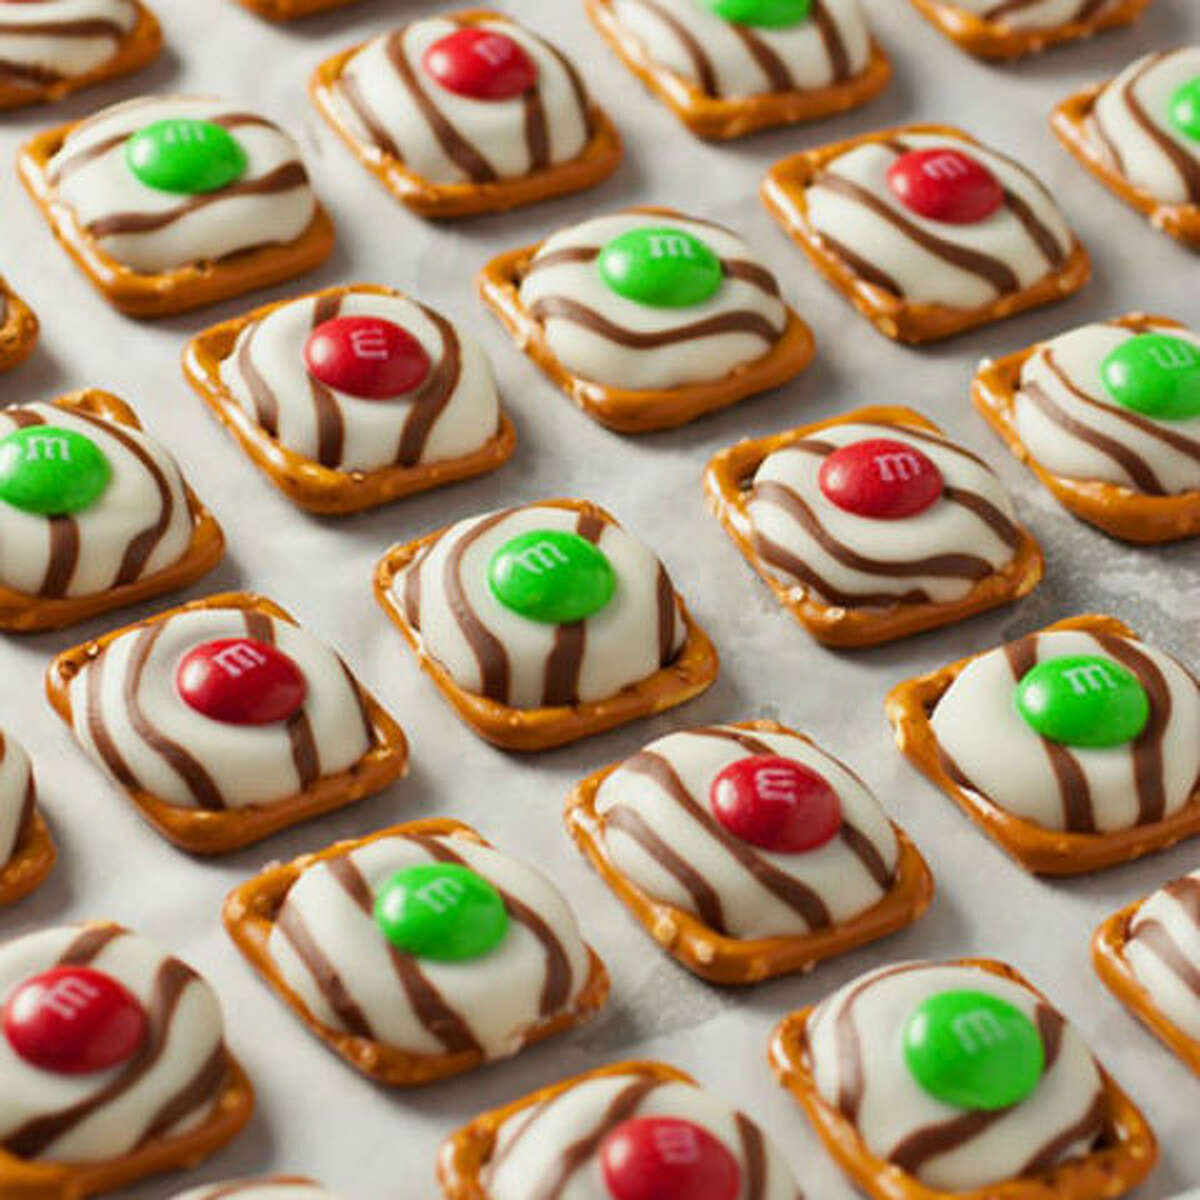 CHRISTMAS PRETZEL M&M HUGS These are the perfect balance of salty and sweet, and made with just three ingredients you can pick up at the drugstore. Get the recipe at Hoosier Homemade.